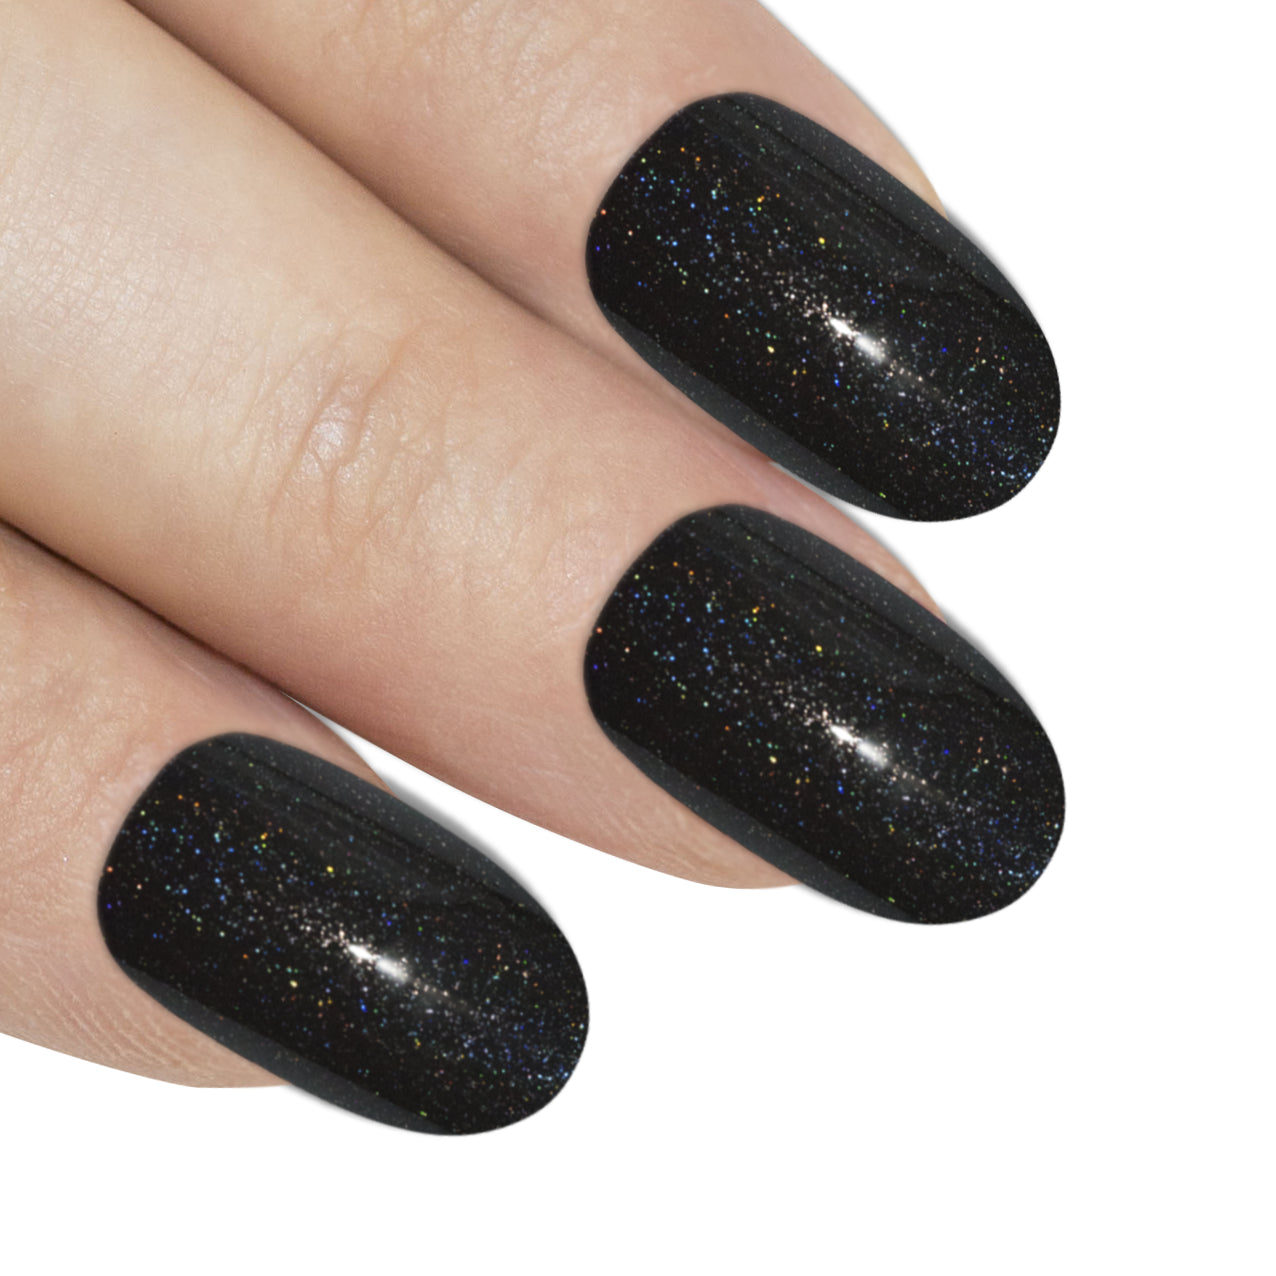 False Nails by Bling Art Black Gel Oval Medium Fake Acrylic 24 Tips with Glue, Nail Care by Bling Art